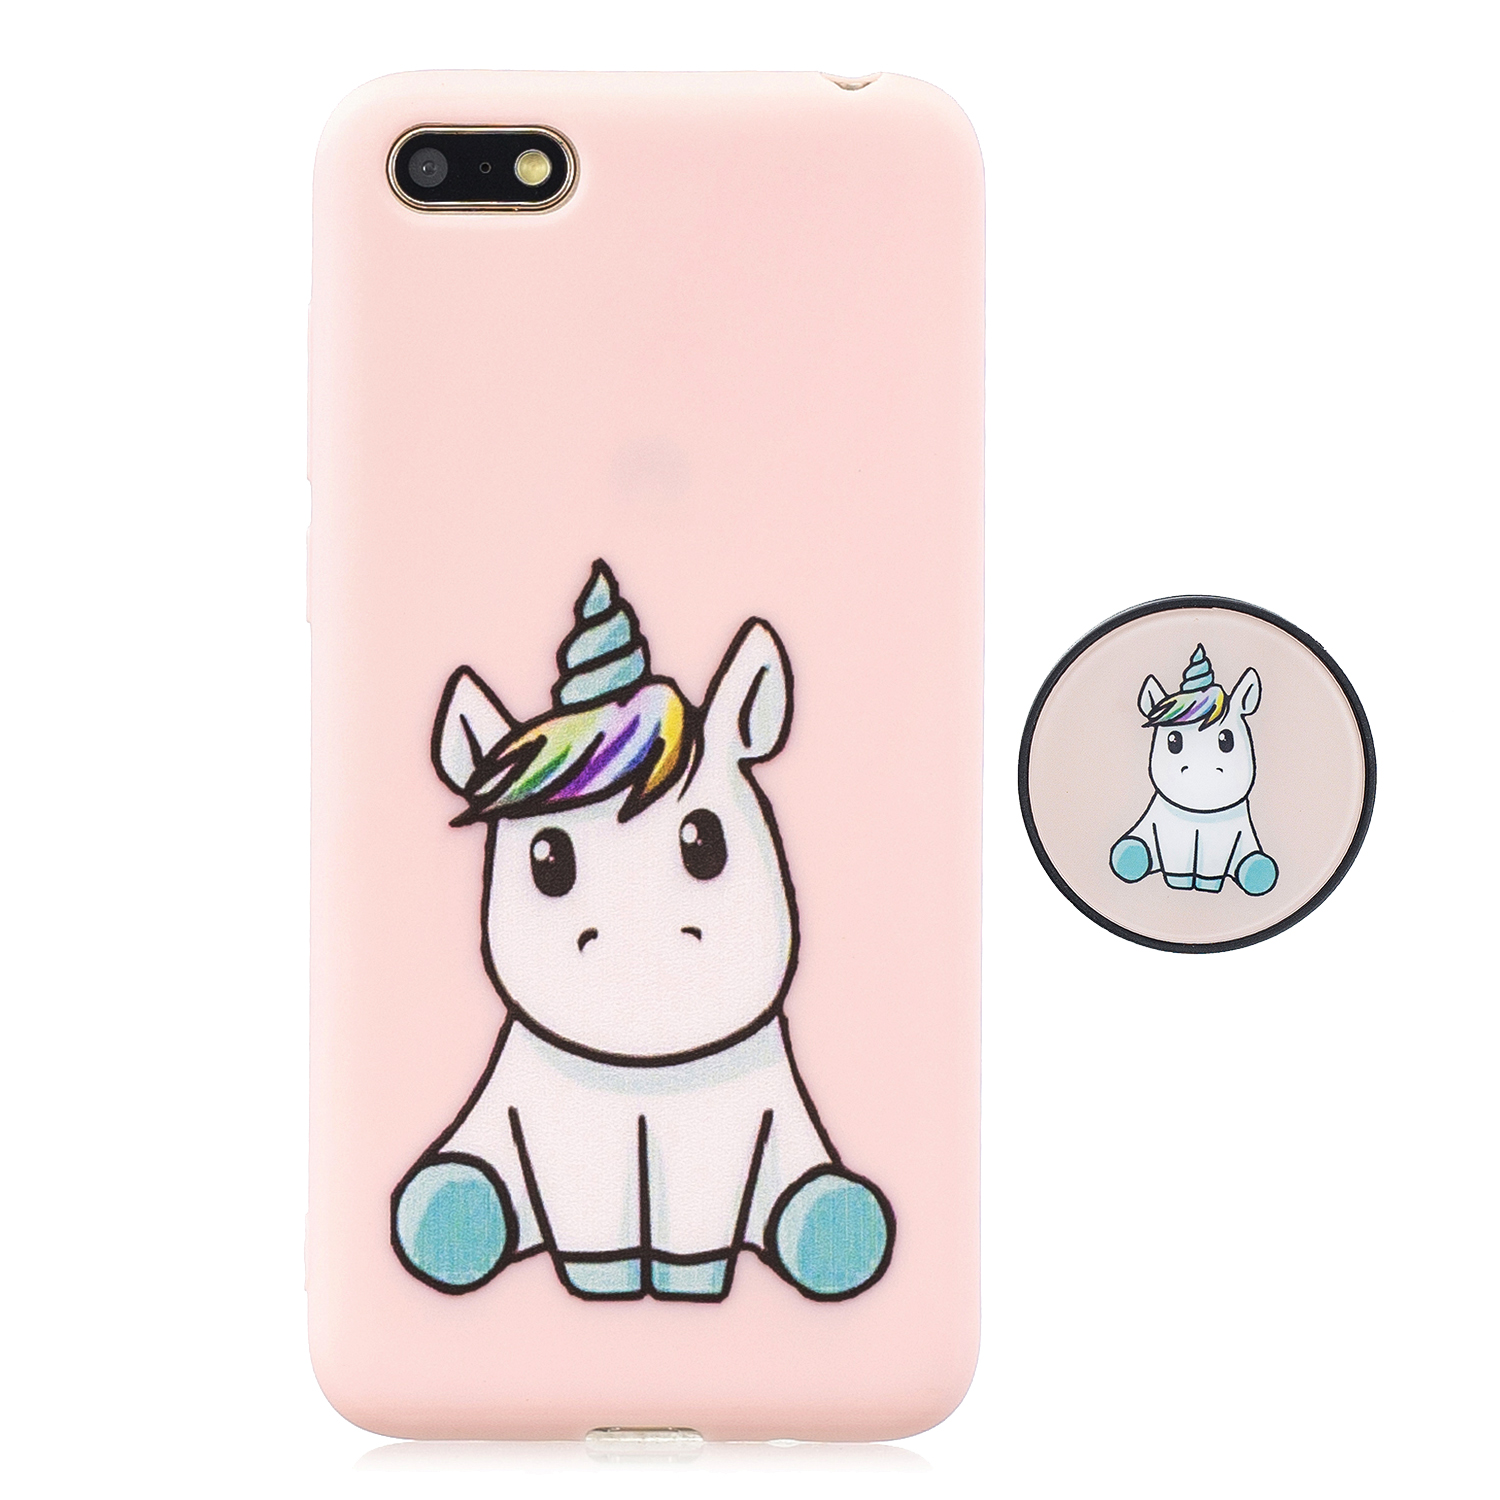 For HUAWEI Y5 2018 Pure Color Phone Cover Cute Cartoon Phone Case Lightweight Soft TPU Full Cover Phone Case with Matching Pattern Adjustable Bracket 6